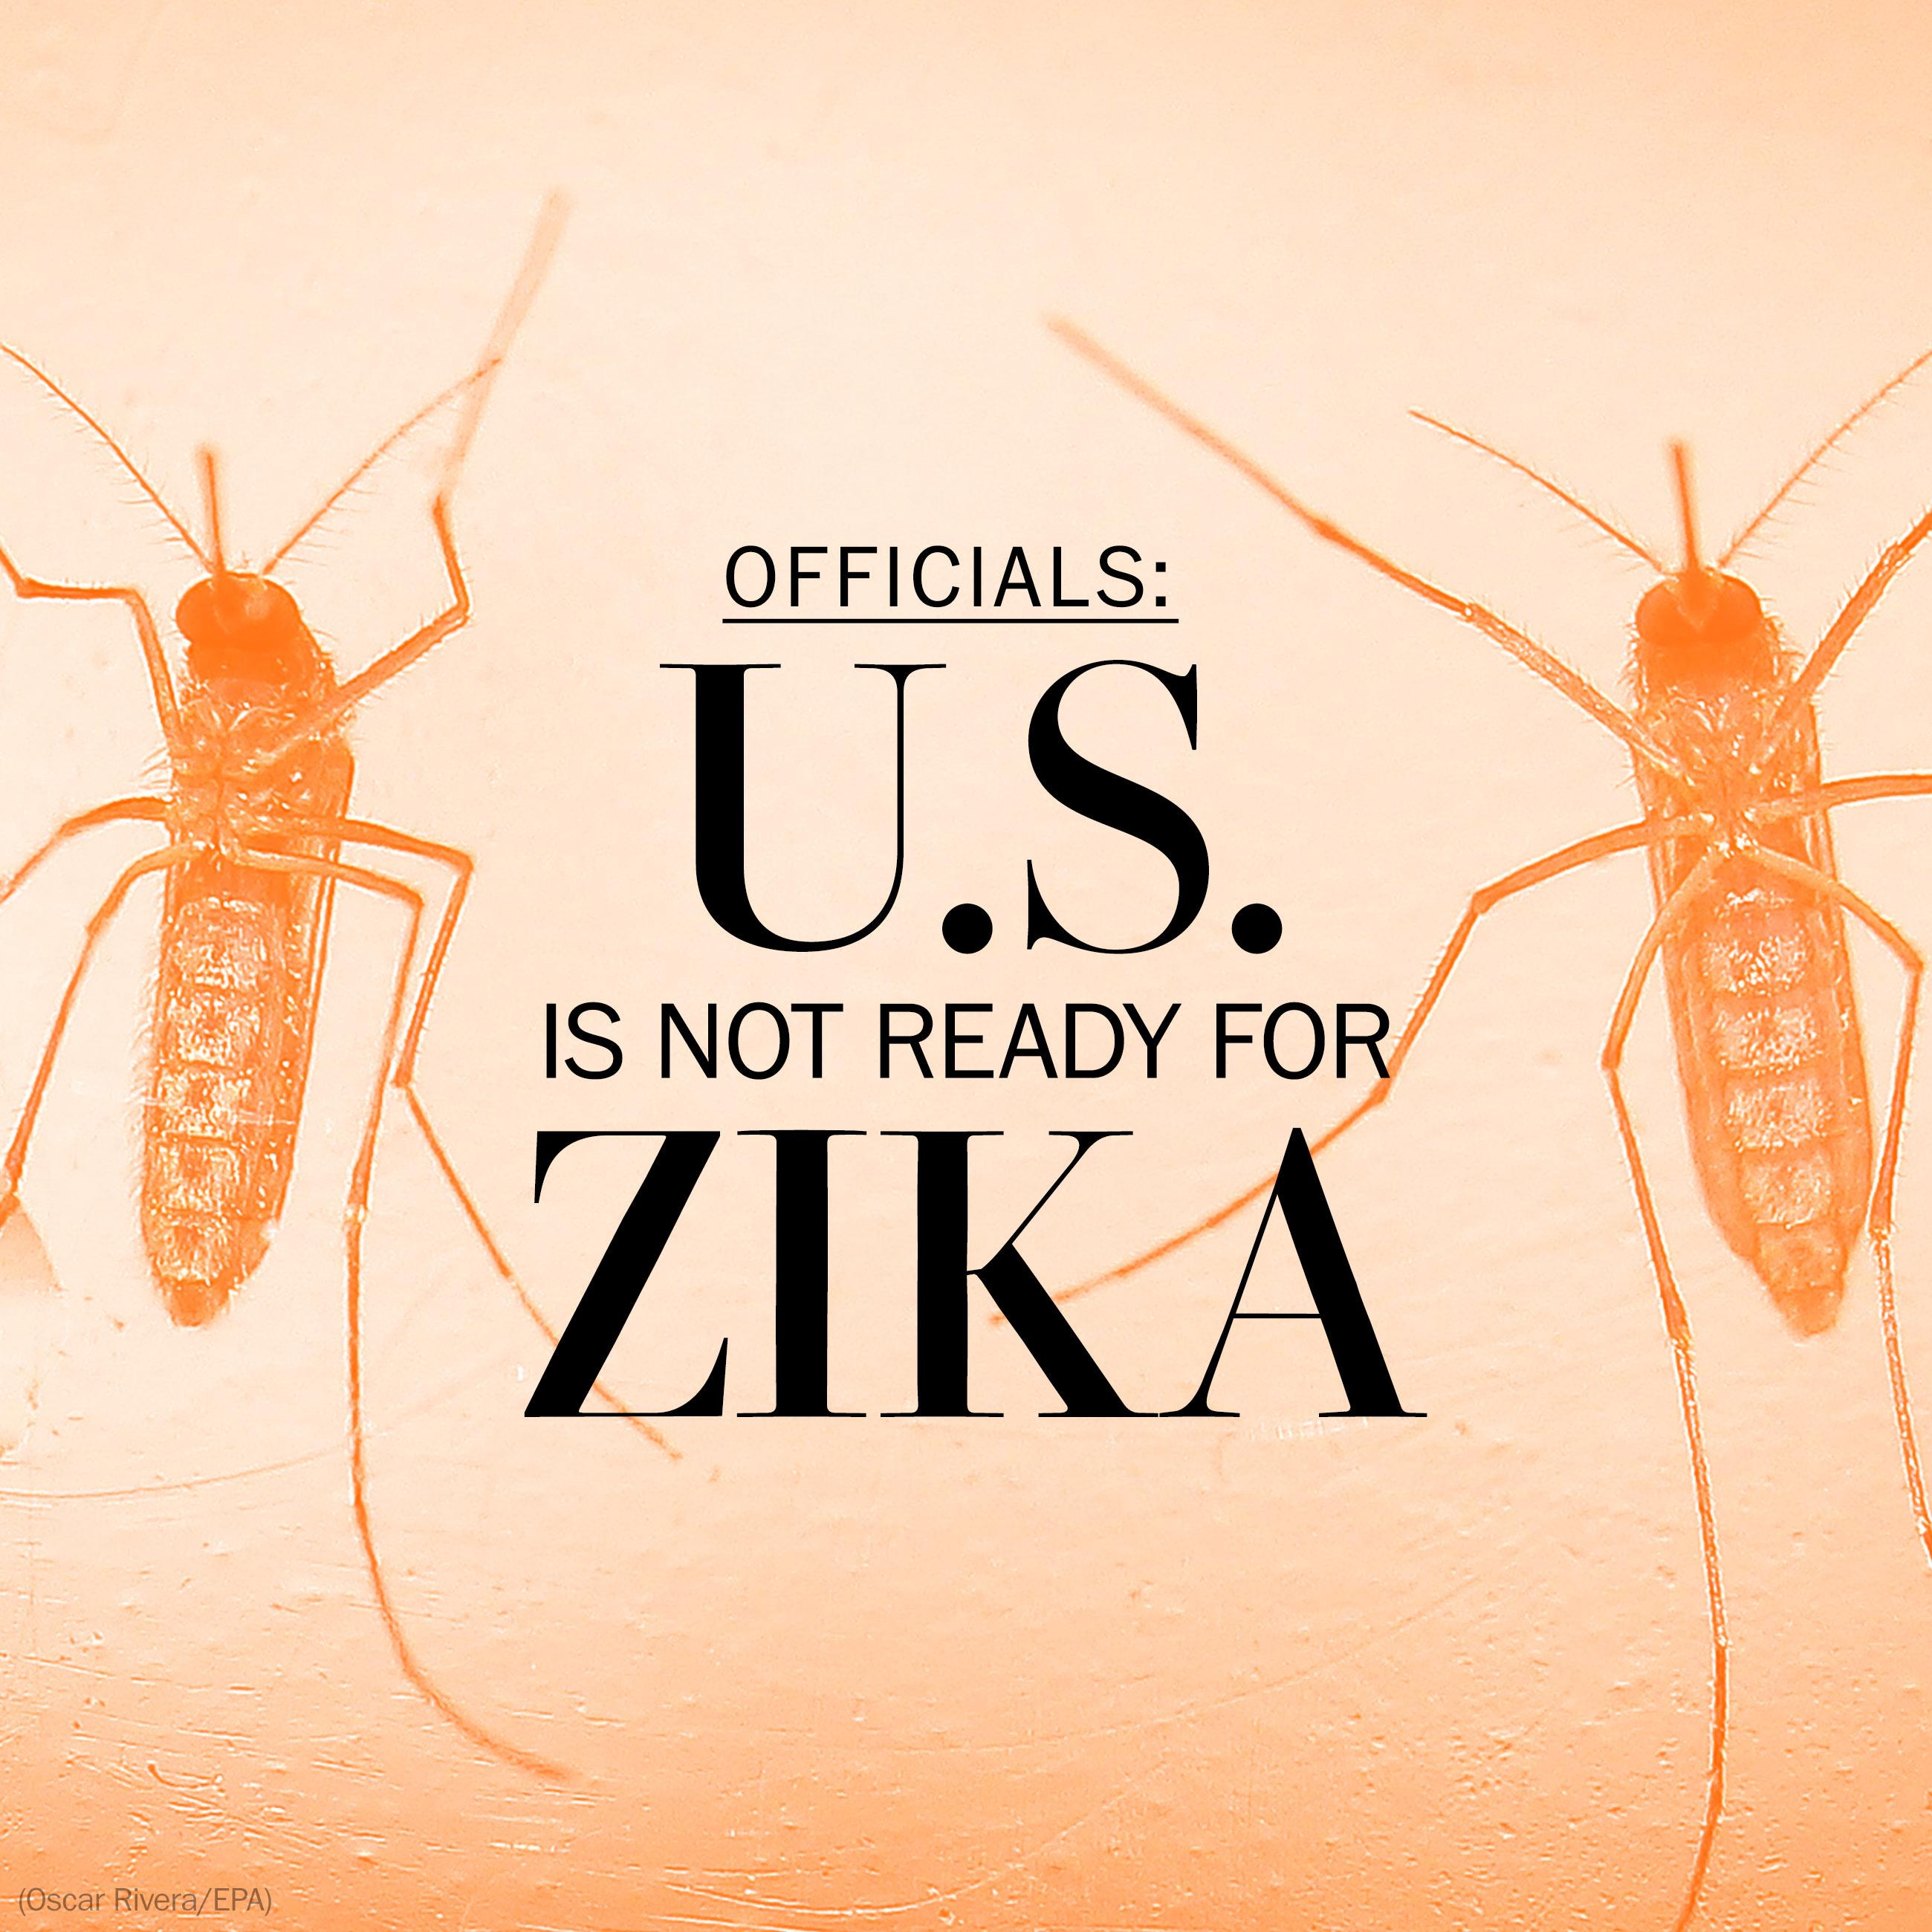 As mosquito season arrives, is the U.S. ready for Zika?